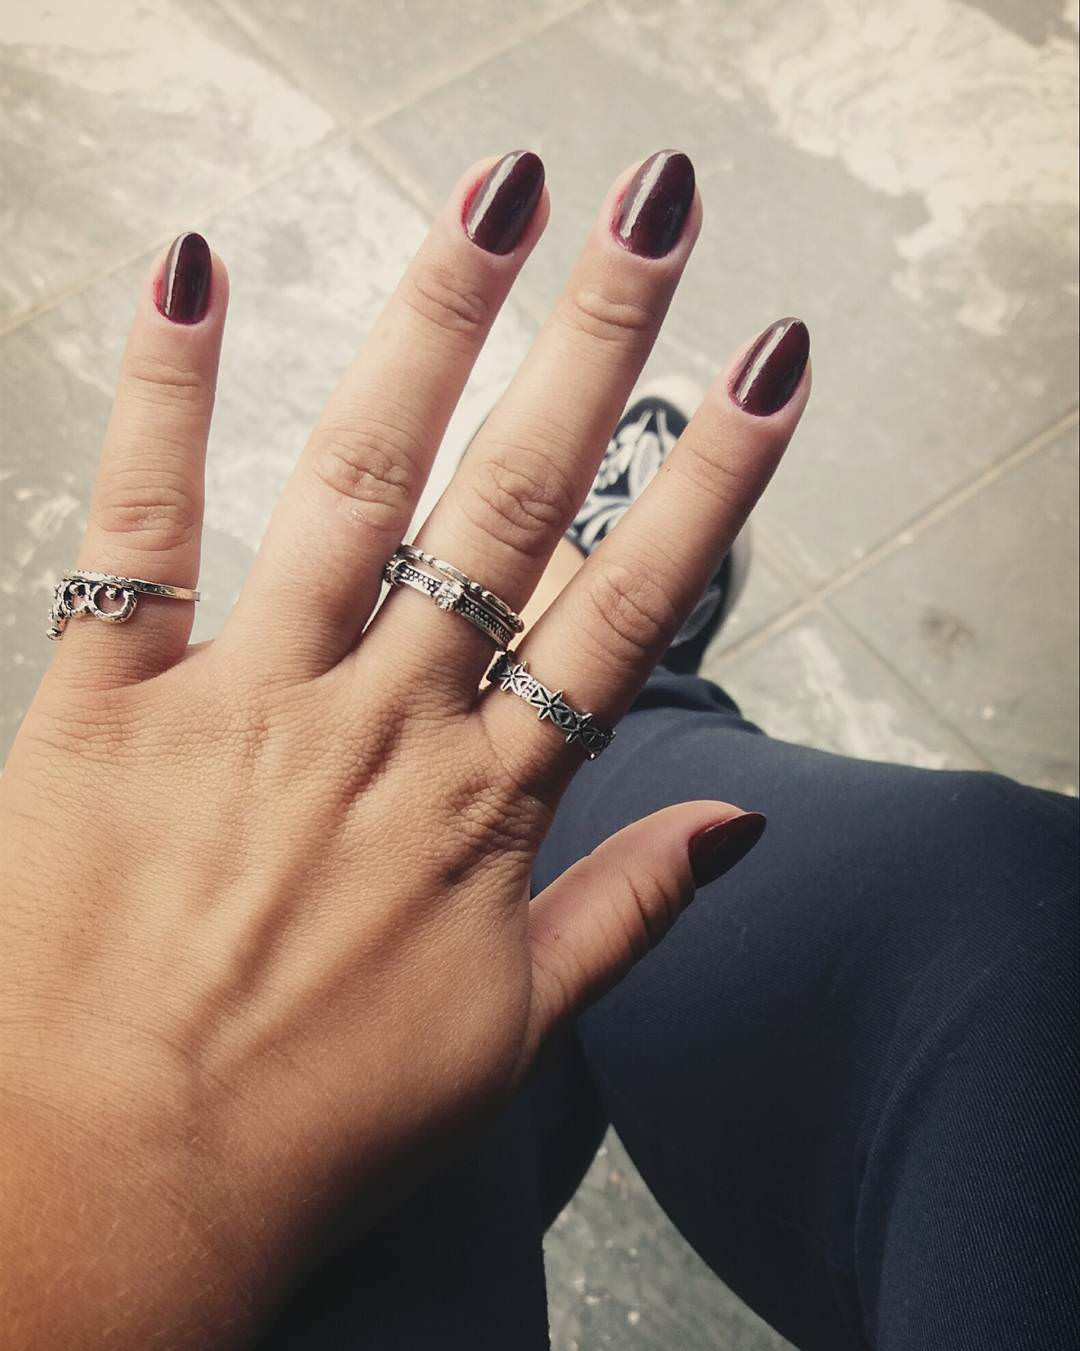 Dark & Simple Oval Nail Design